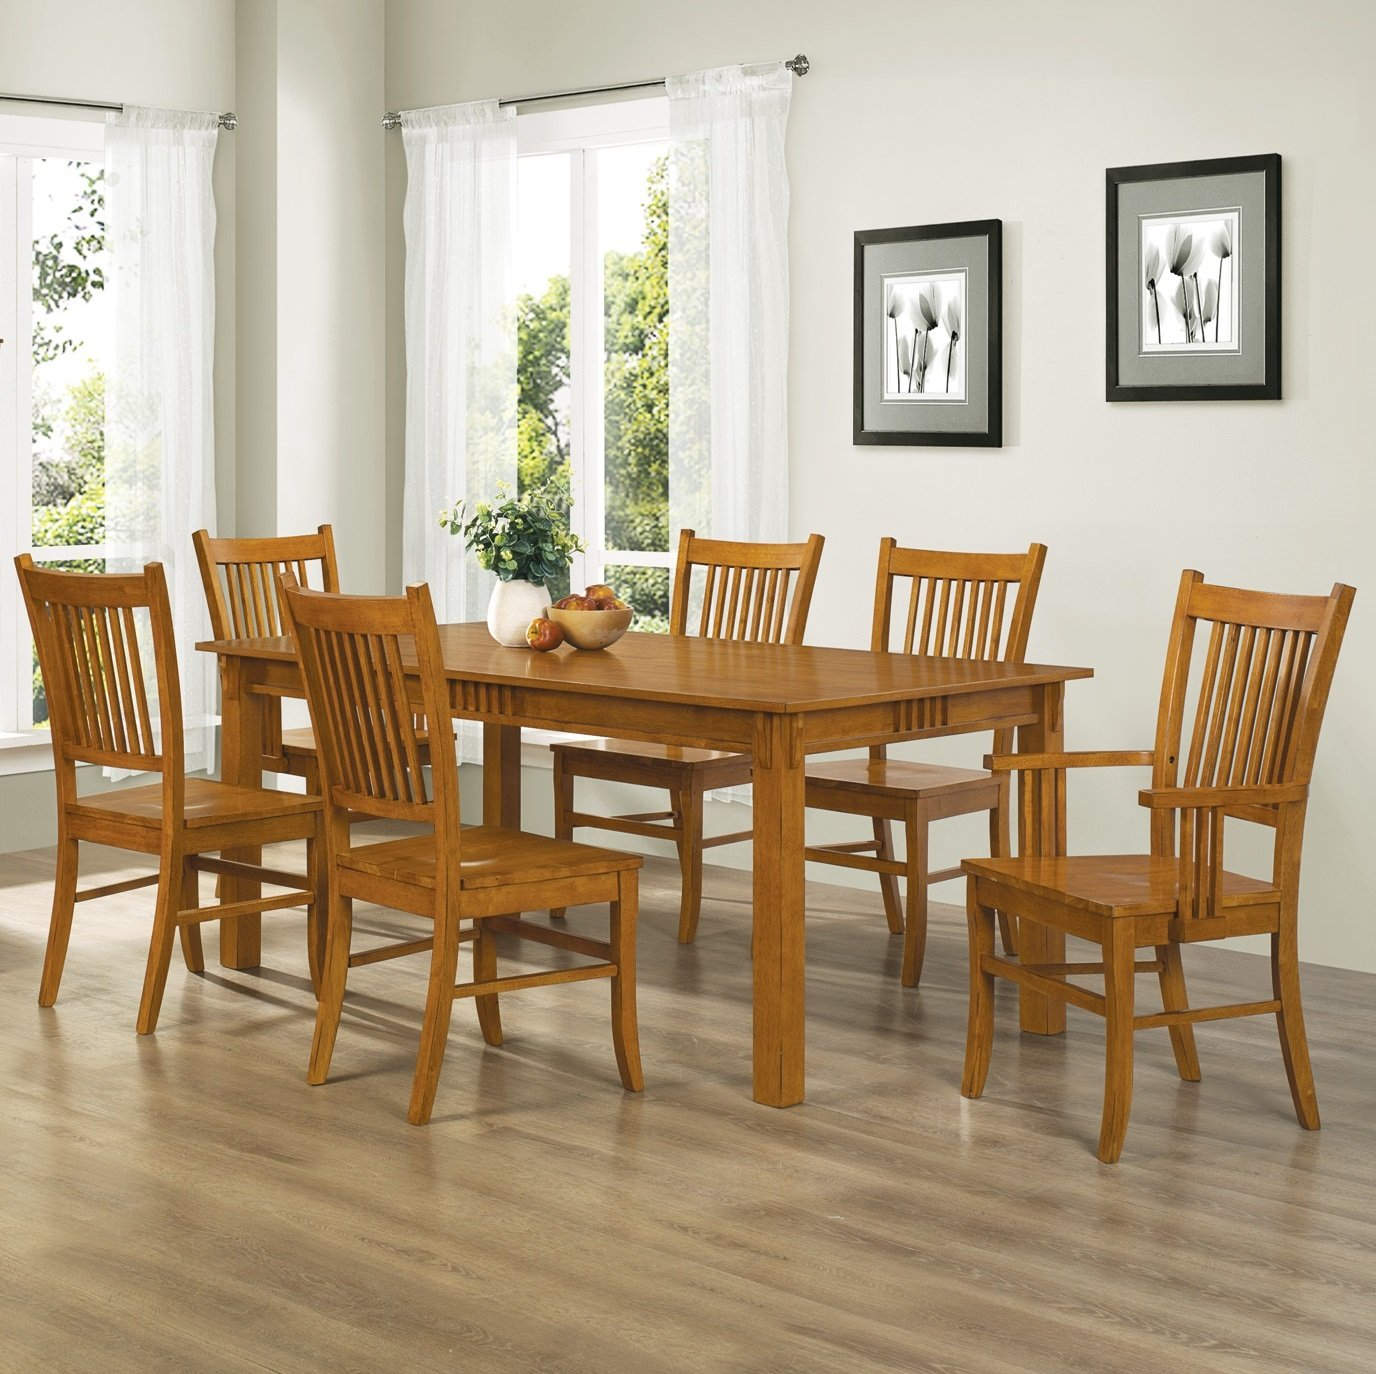 Captivating Amazon.com   Coaster Home Furnishings 7 Piece Mission Style Solid Hardwood Dining  Table U0026 Chairs Set   Table U0026 Chair Sets